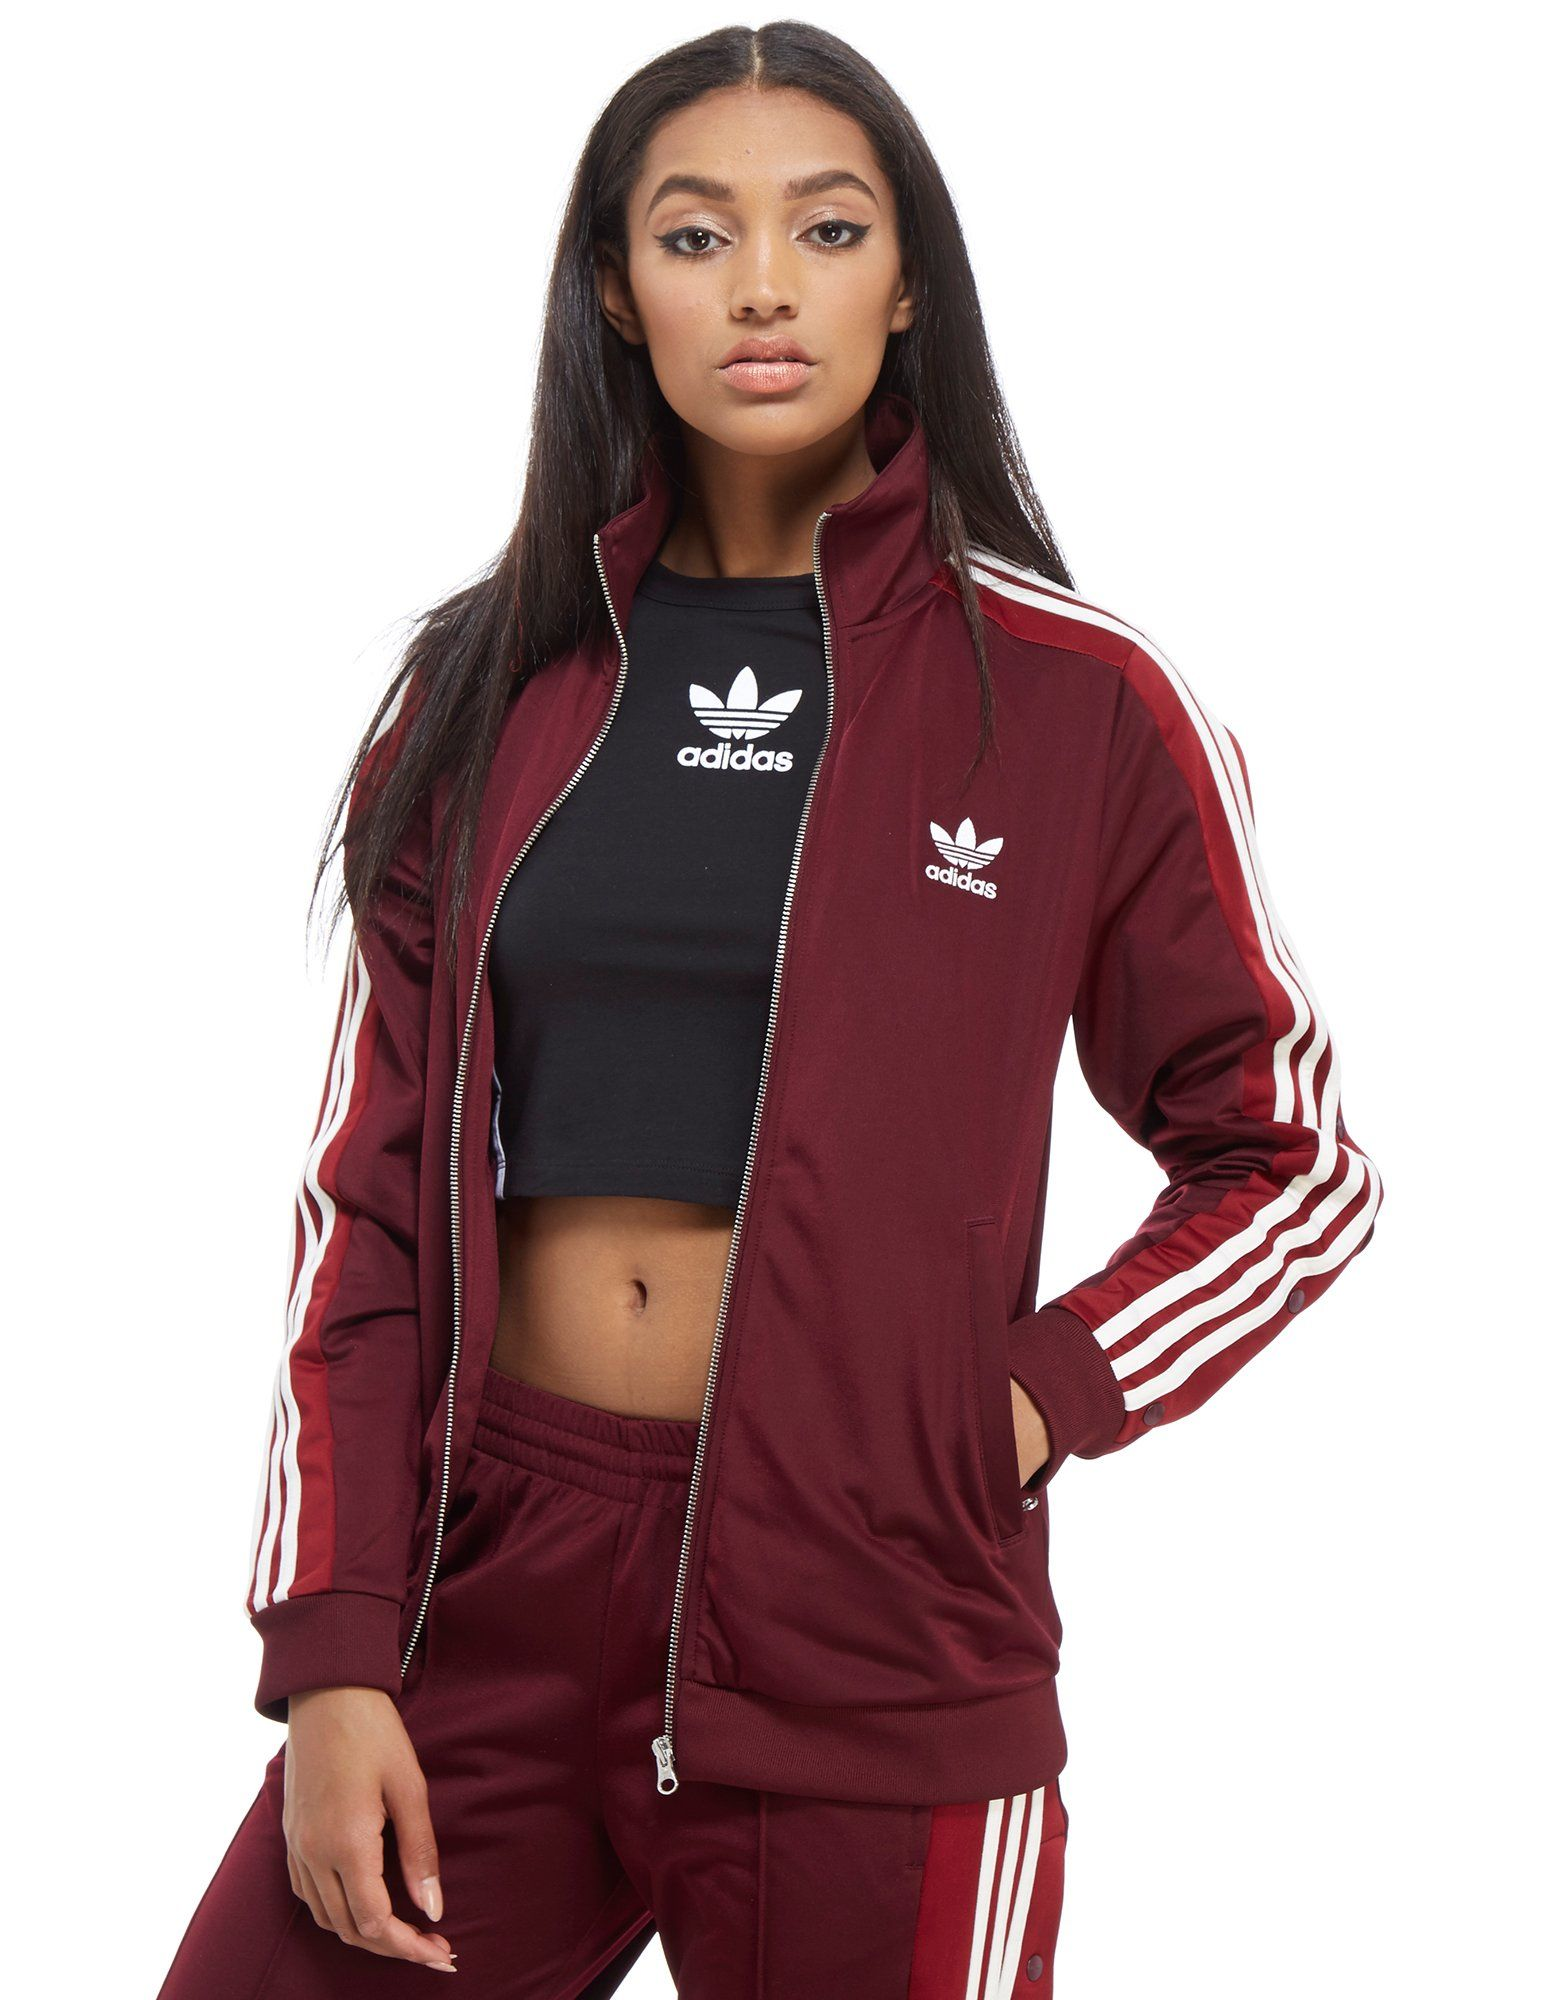 Adidas Maroon Tracksuit Womens thehampsteadfactory.co.uk 663ba65501c4